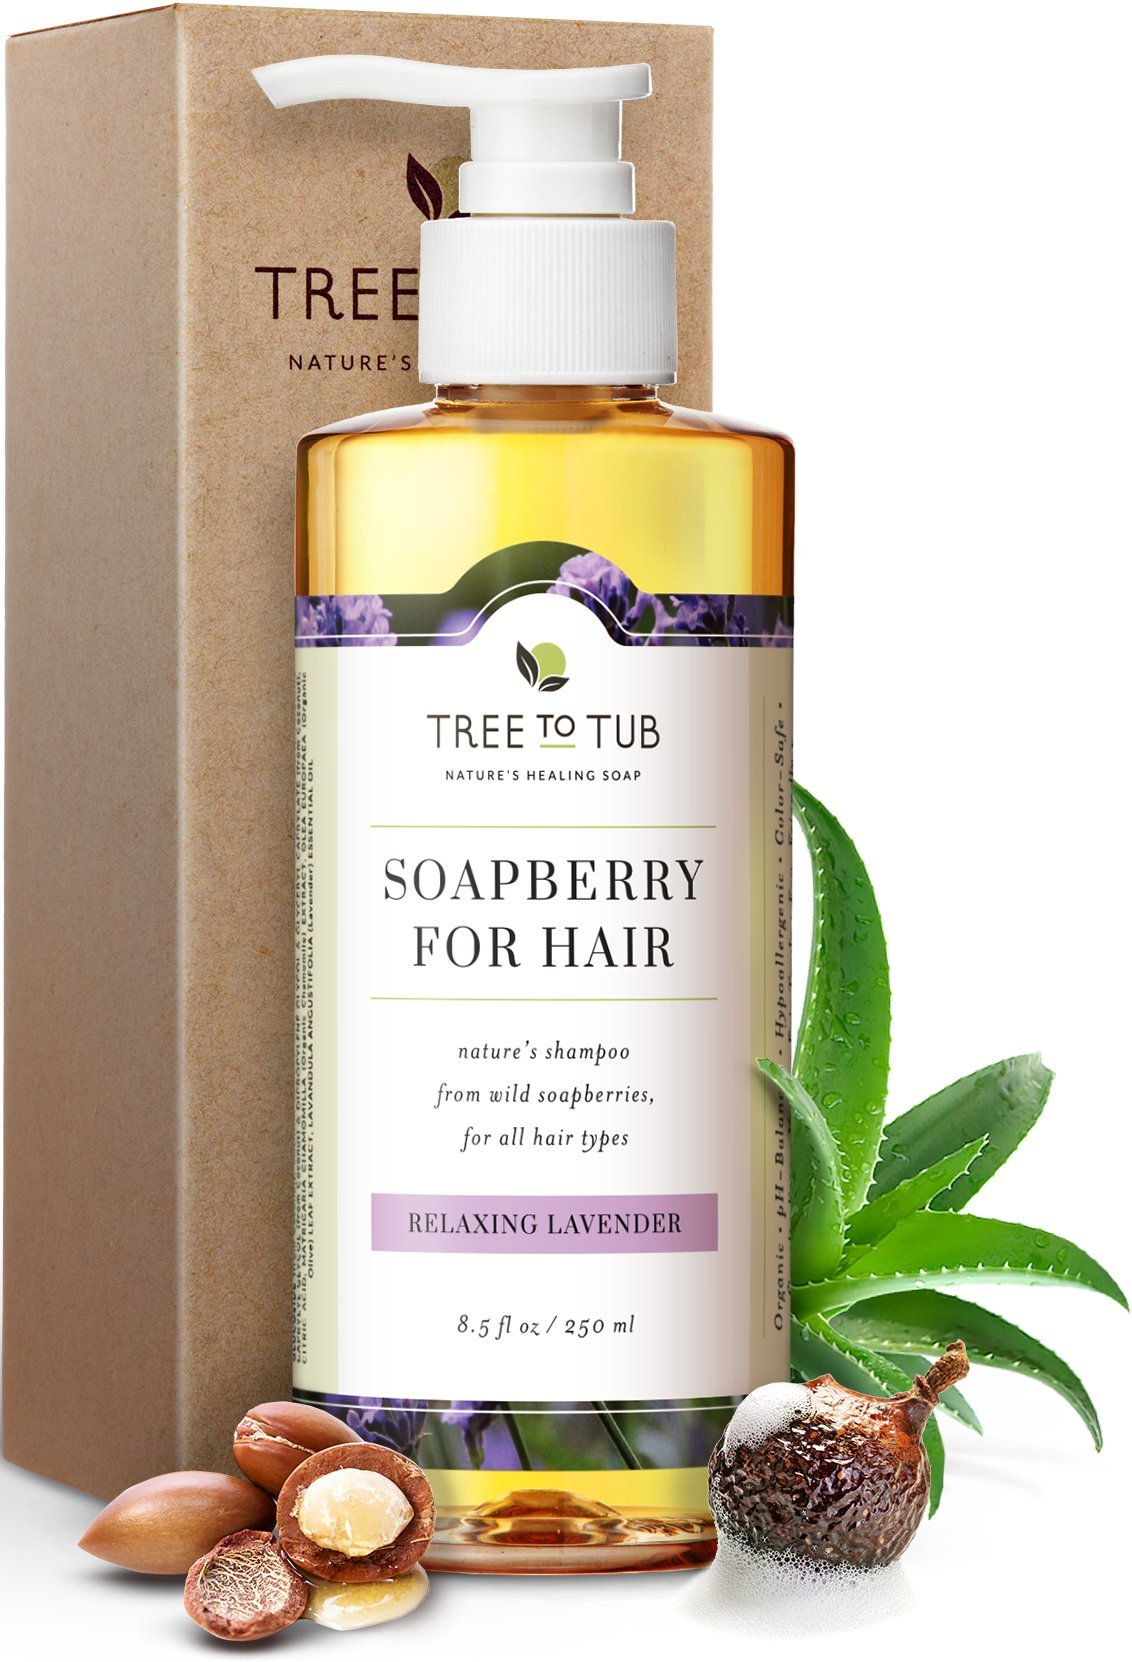 Real, Argan Oil Shampoo For Dry Hair and Scalp, by Tree To Tub. The Only pH 5.5 Balanced Dandruff Shampoo For Itchy and Sensitive Skin, with Lavender Essential Oil and Organic Wild Soapberries, 8.5 oz